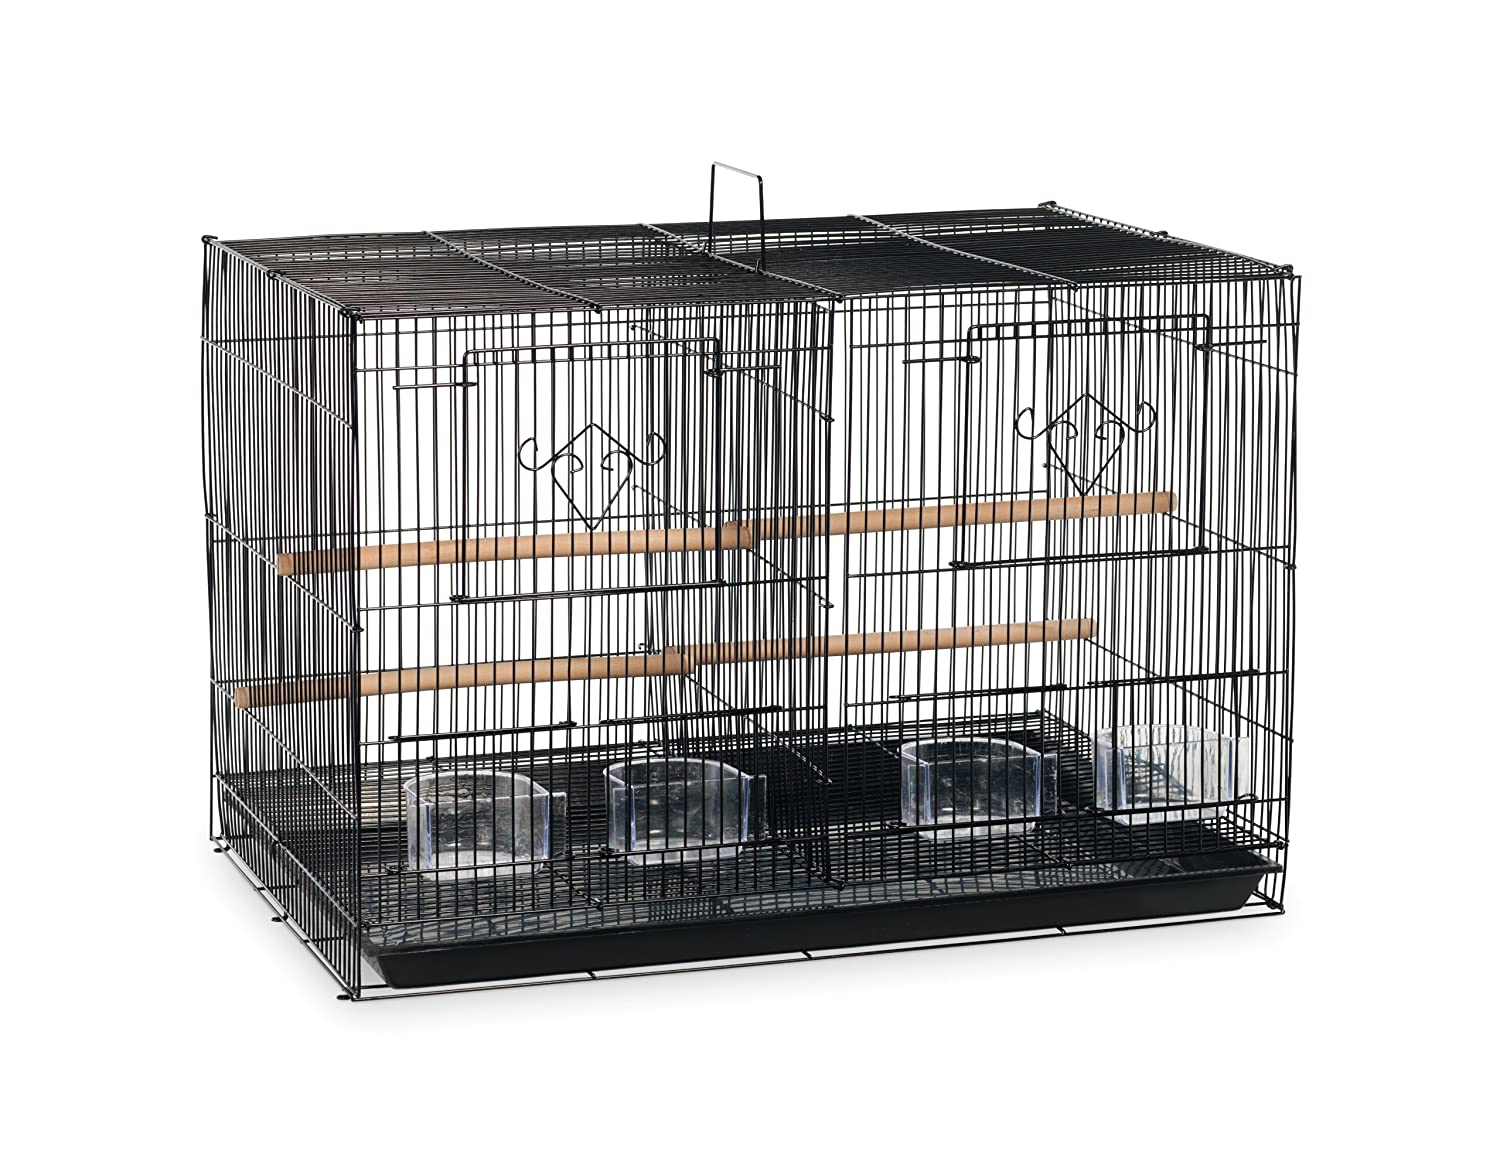 Prevue Hendryx SPF063 Divided Flight Cage, Black Prevue Pet Products